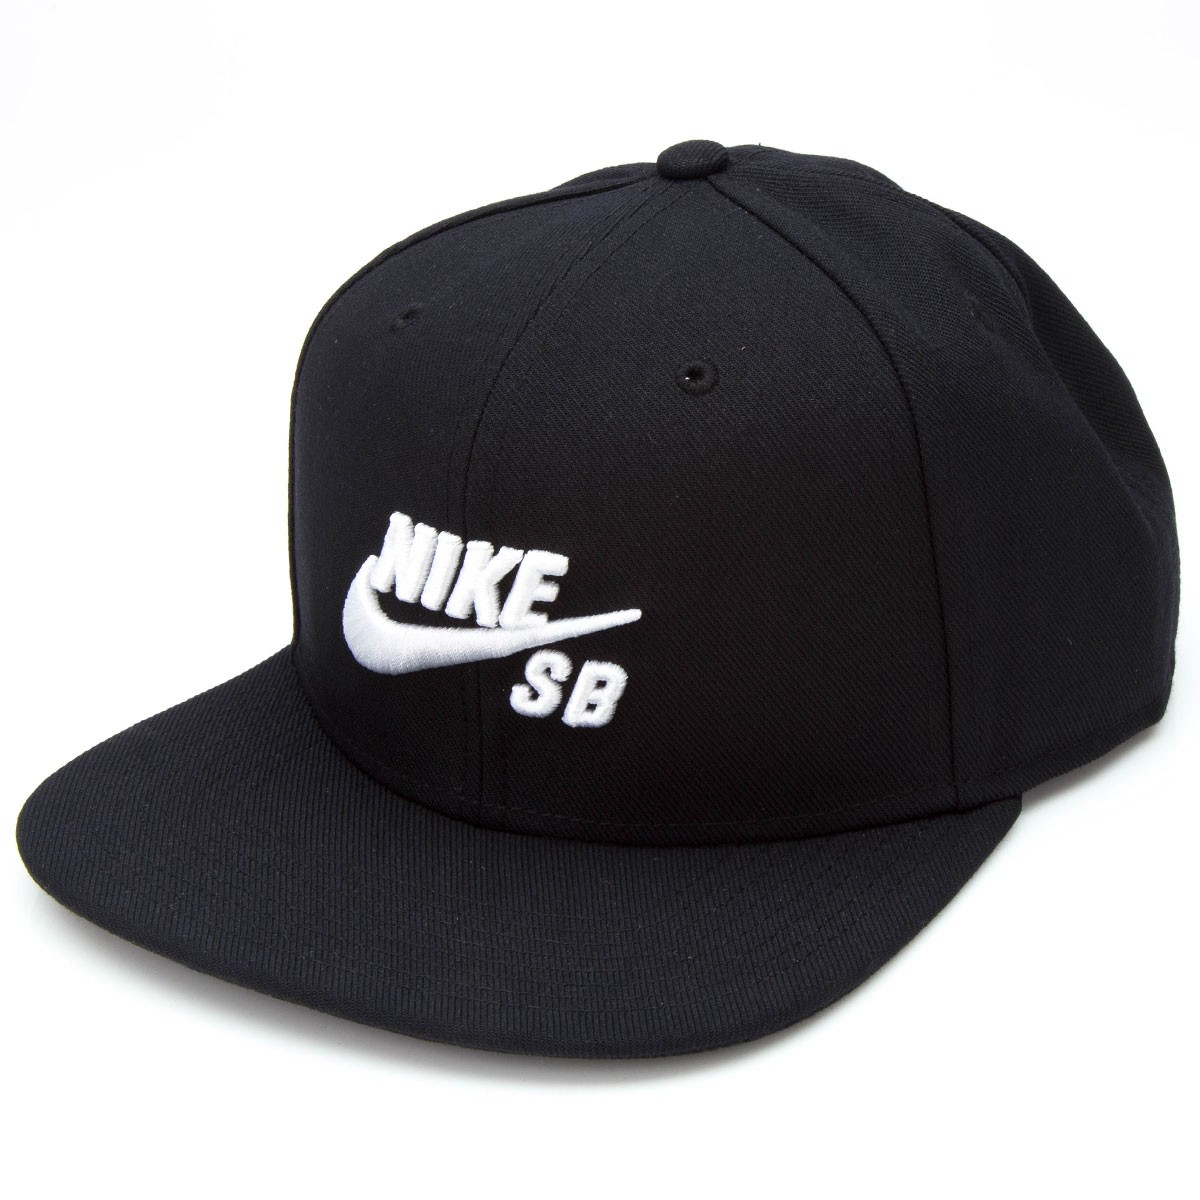 how to clean a white nike hat